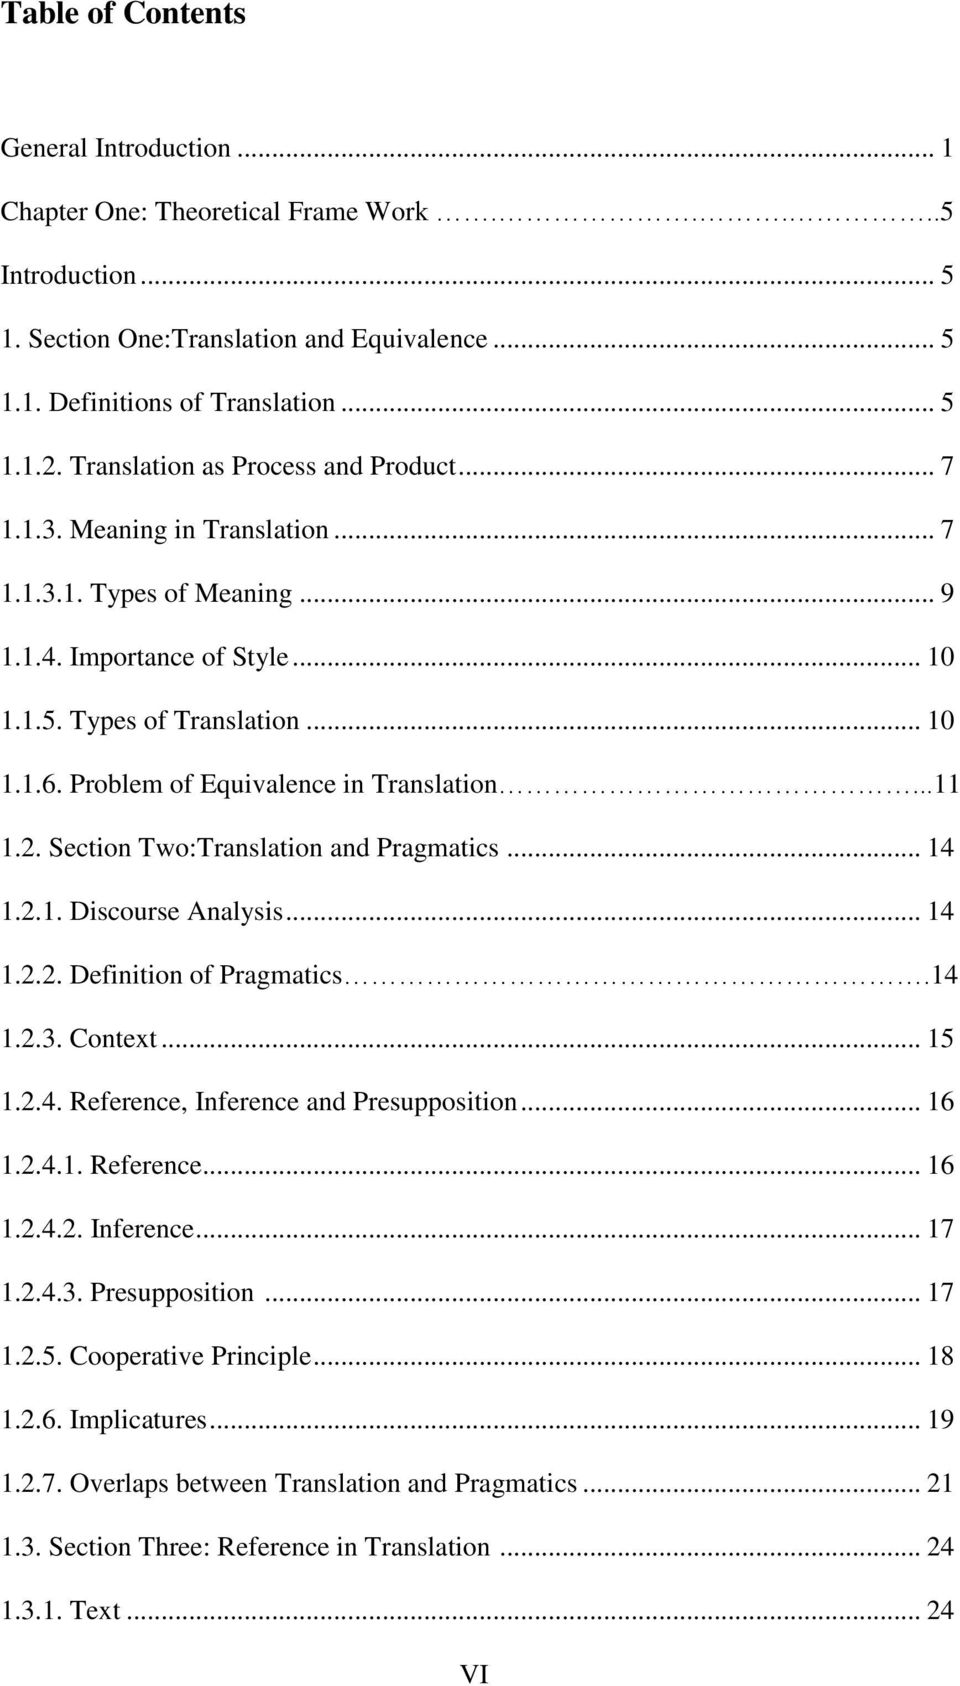 Problem of Equivalence in Translation...11 1.2. Section Two:Translation and Pragmatics... 14 1.2.1. Discourse Analysis... 14 1.2.2. Definition of Pragmatics.14 1.2.3. Context... 15 1.2.4. Reference, Inference and Presupposition.